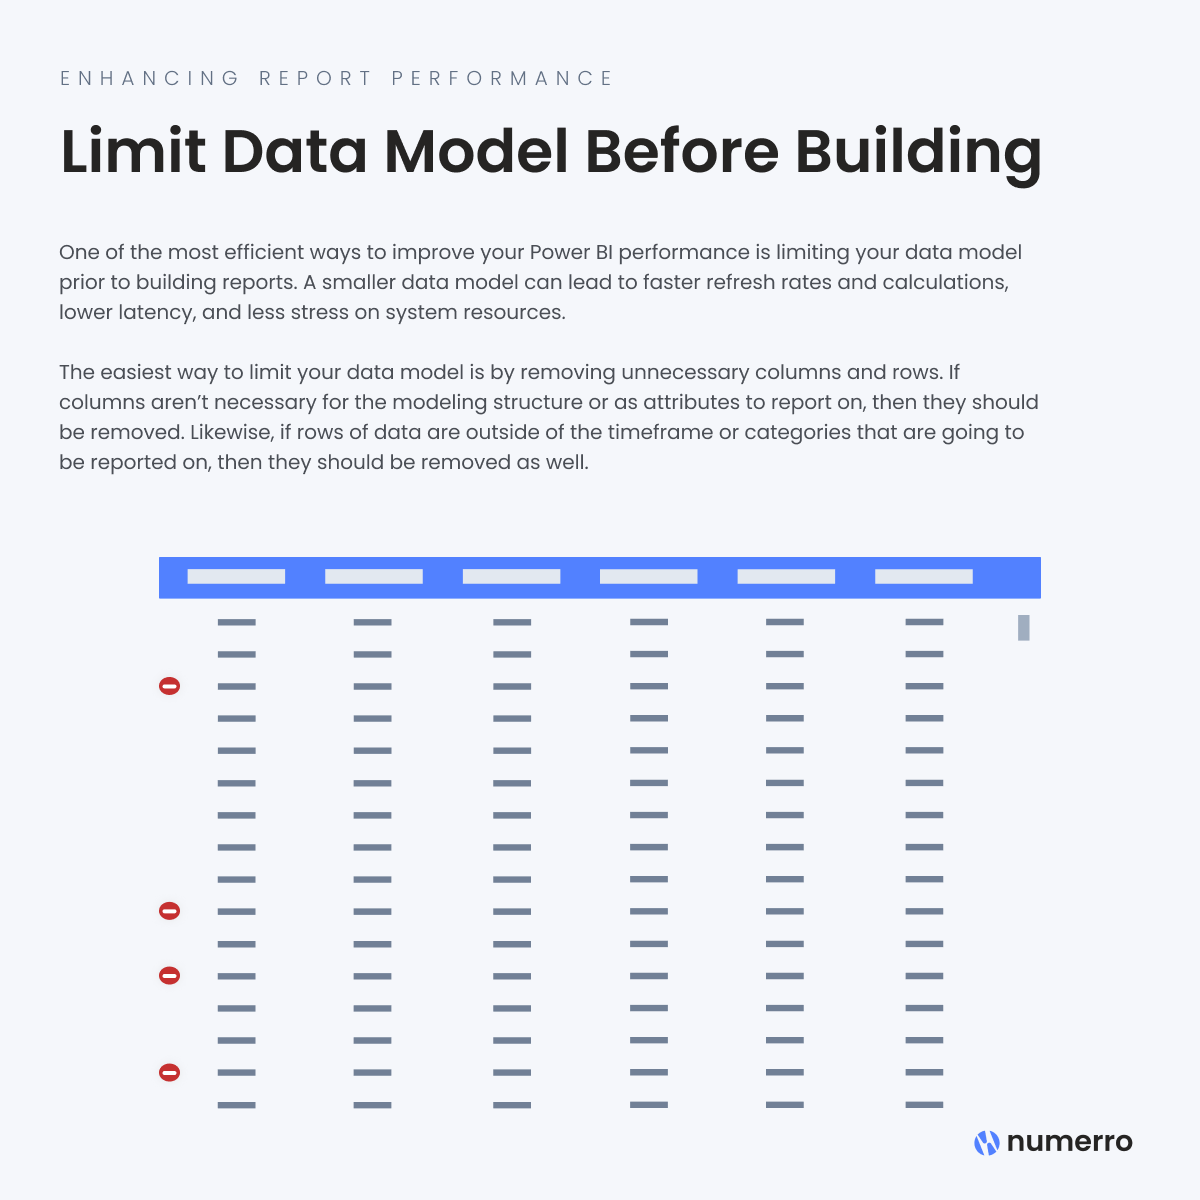 Enhancing Report Performance -Limit Data Model Before Building